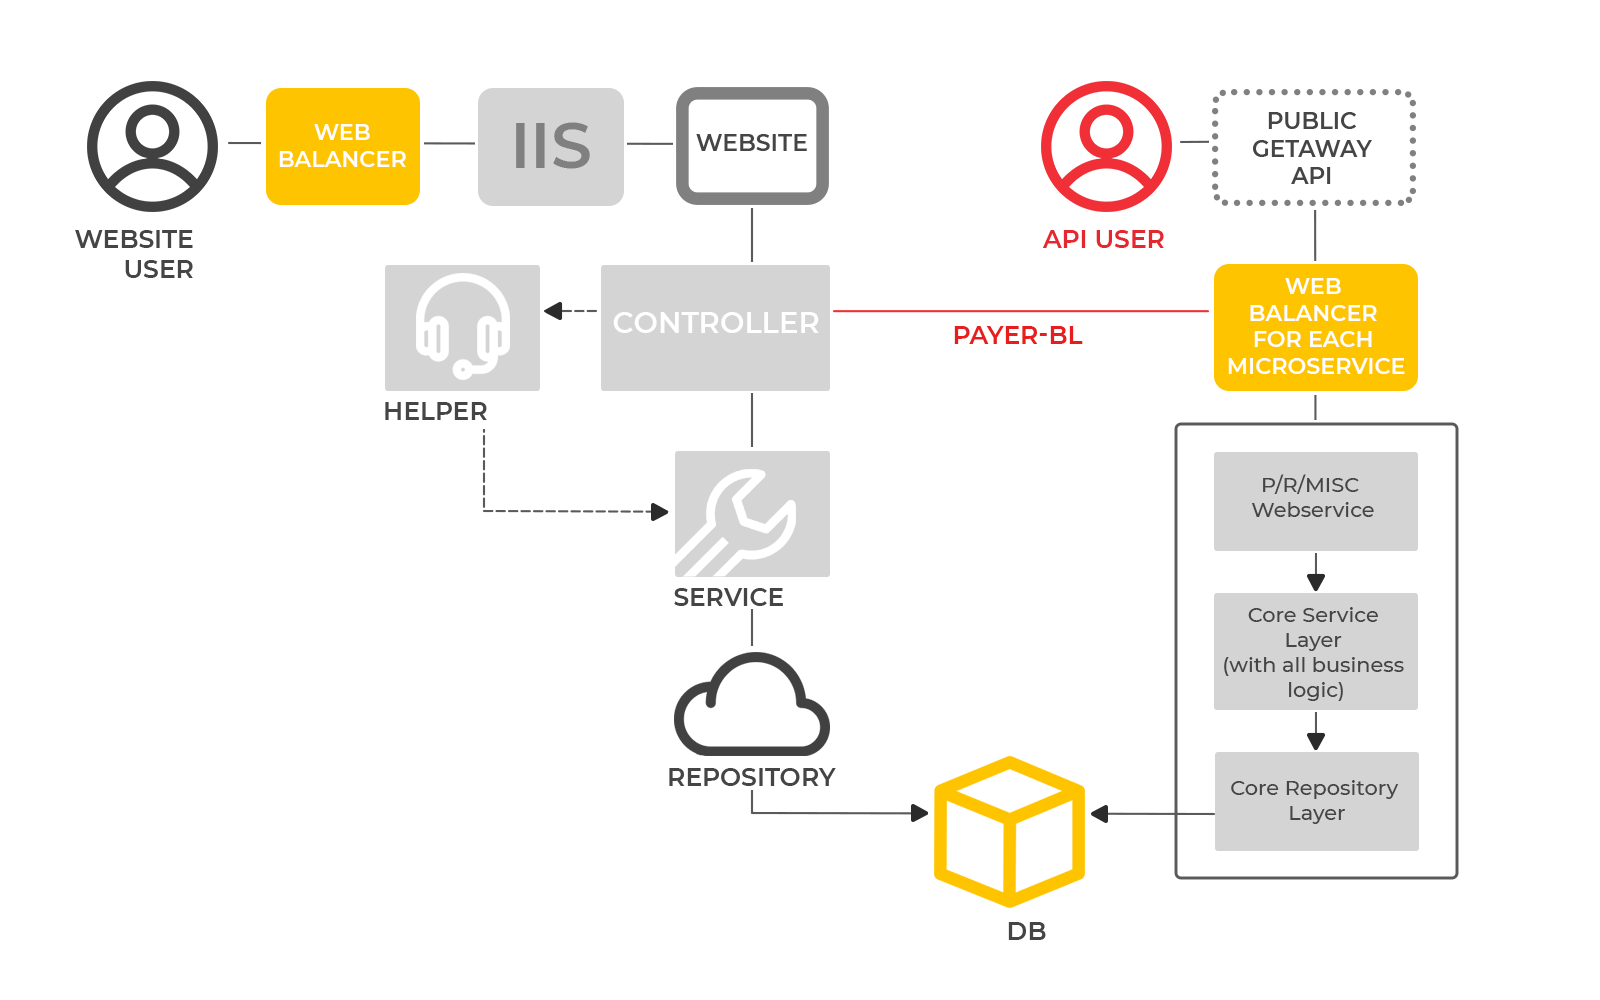 Public Getaway API. Monolithic Architecture. From legacy monolith app to microservices infrastructure. Case study by UppLabs